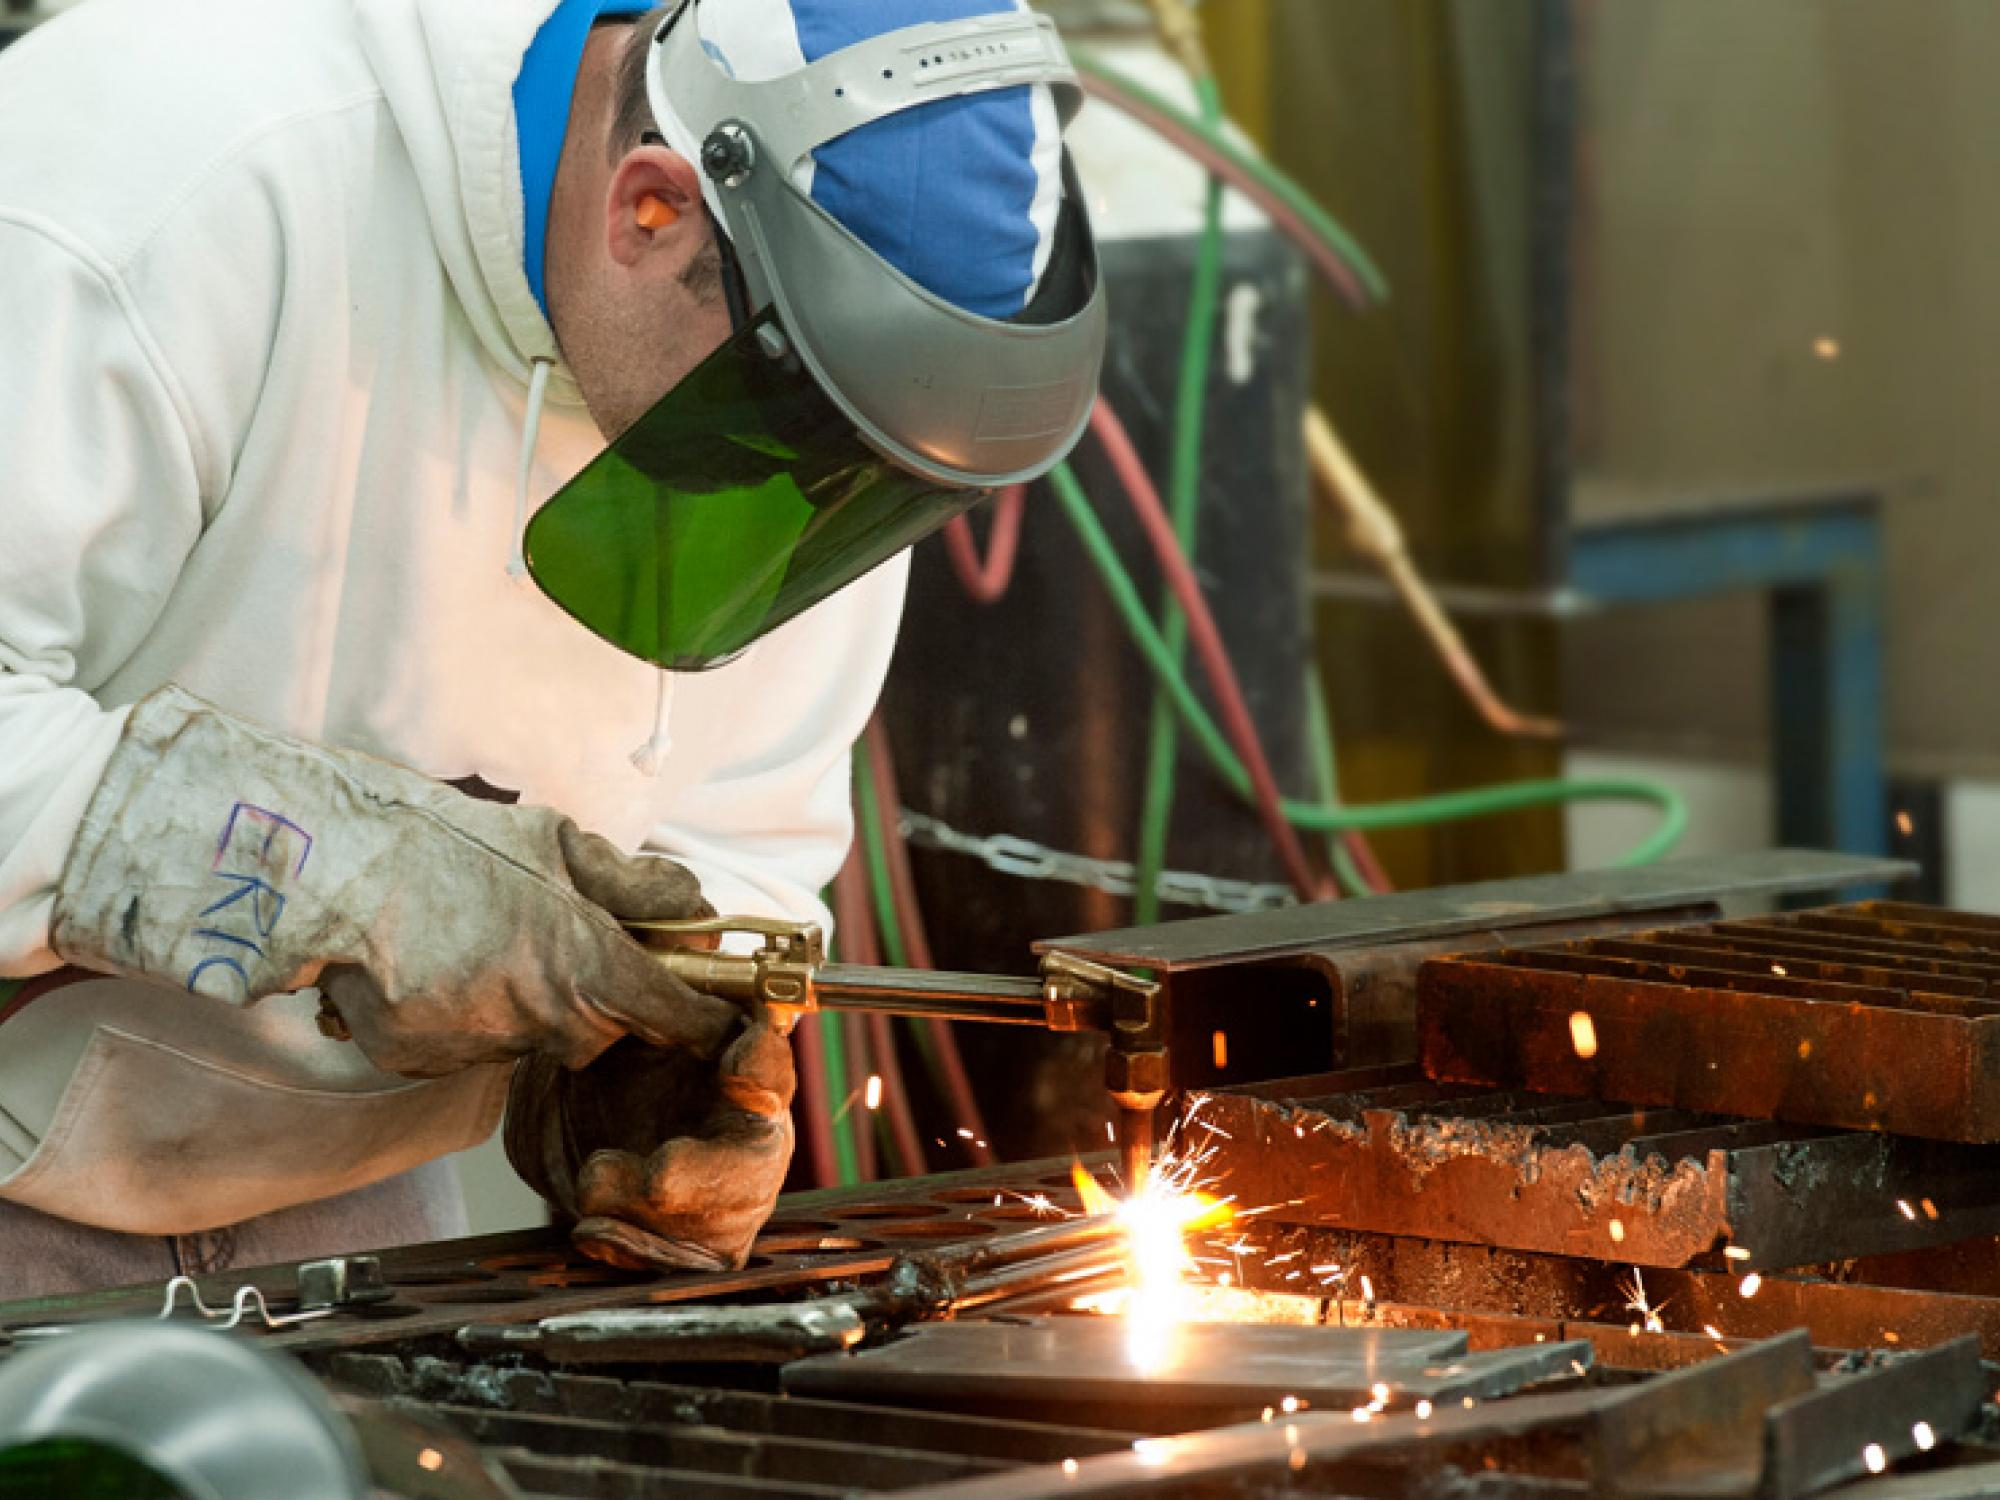 Sparks fly as a man with a welding torch works on a piece of metal.